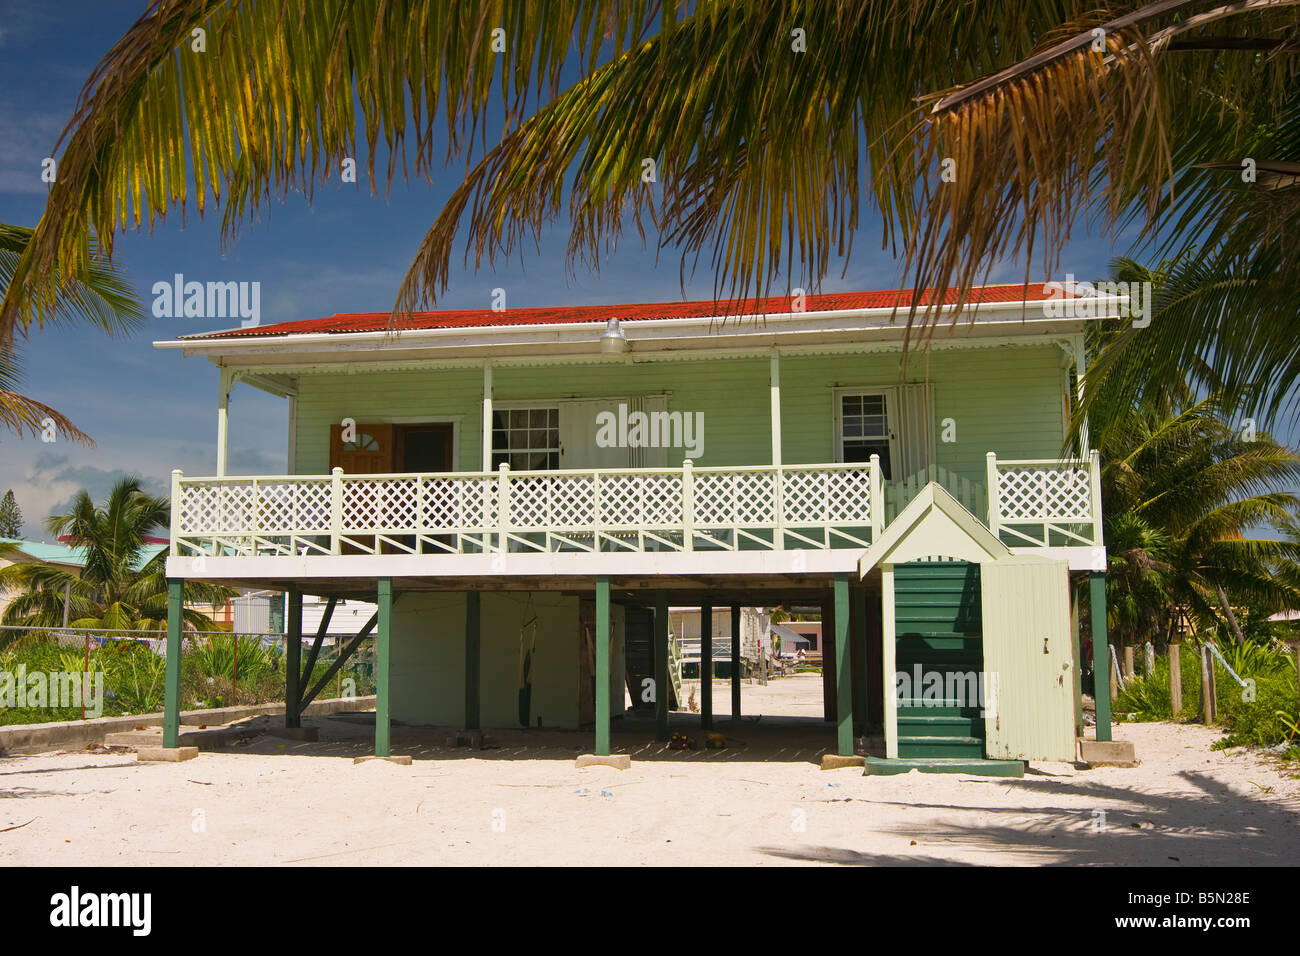 Wonderful CAYE CAULKER BELIZE Wooden House On Stilts On Sand Beach With Palm Trees